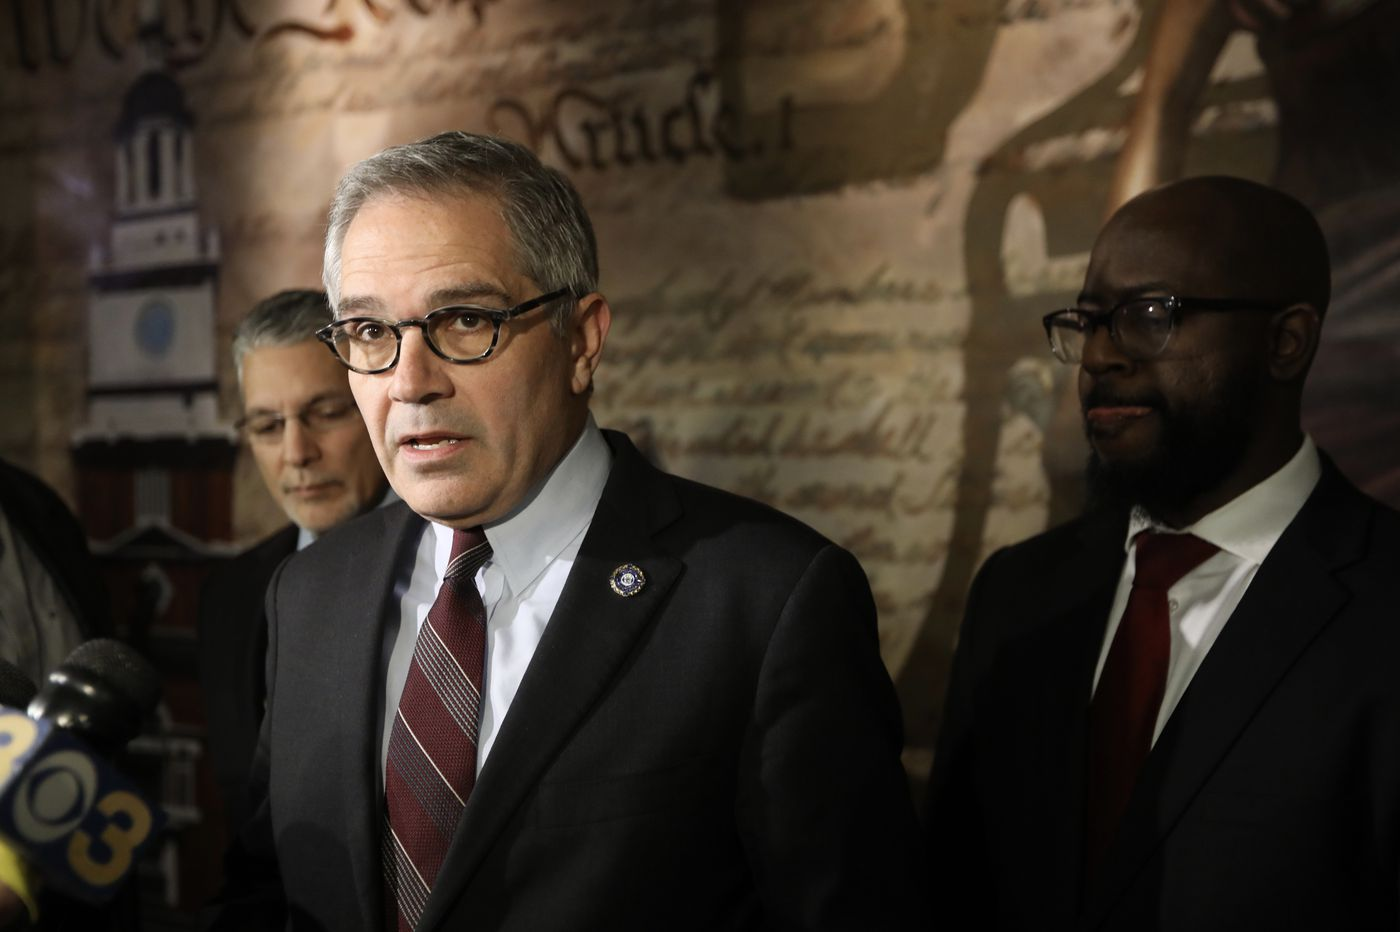 Larry Krasner moves Philadelphia beyond 'eye-for-an-eye' on murder | Opinion